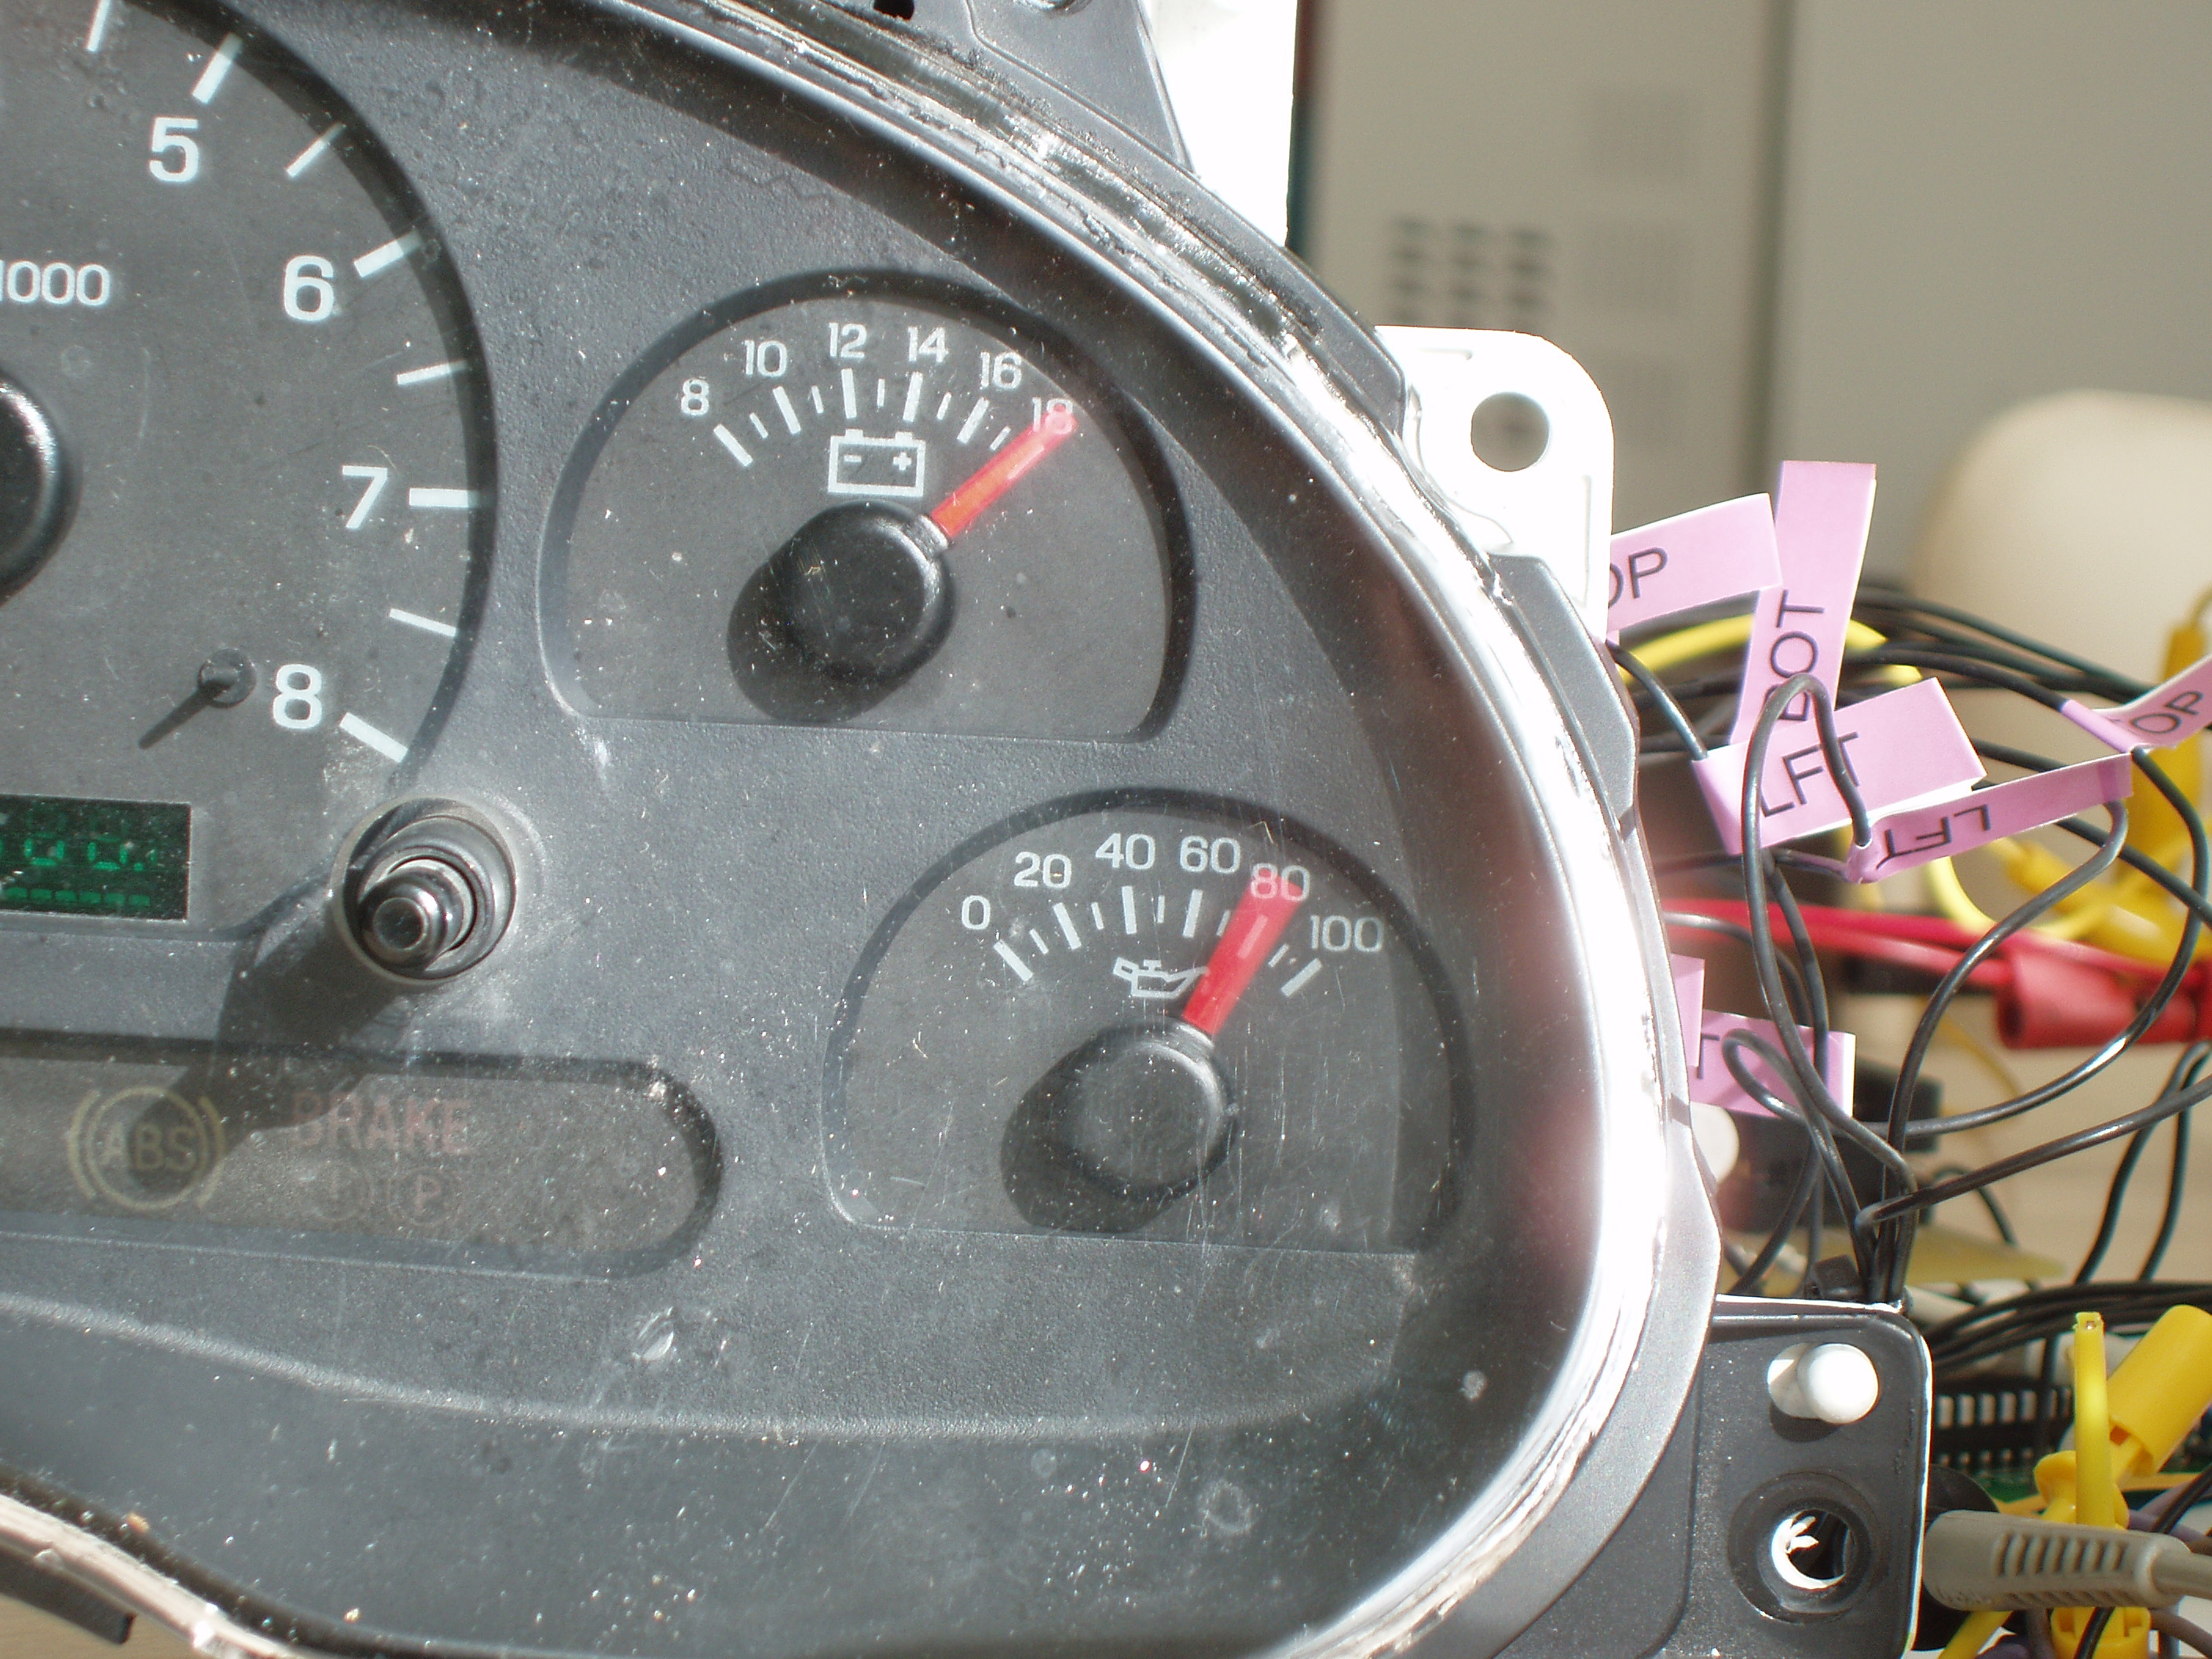 Temp & Oil Pressure Gauges